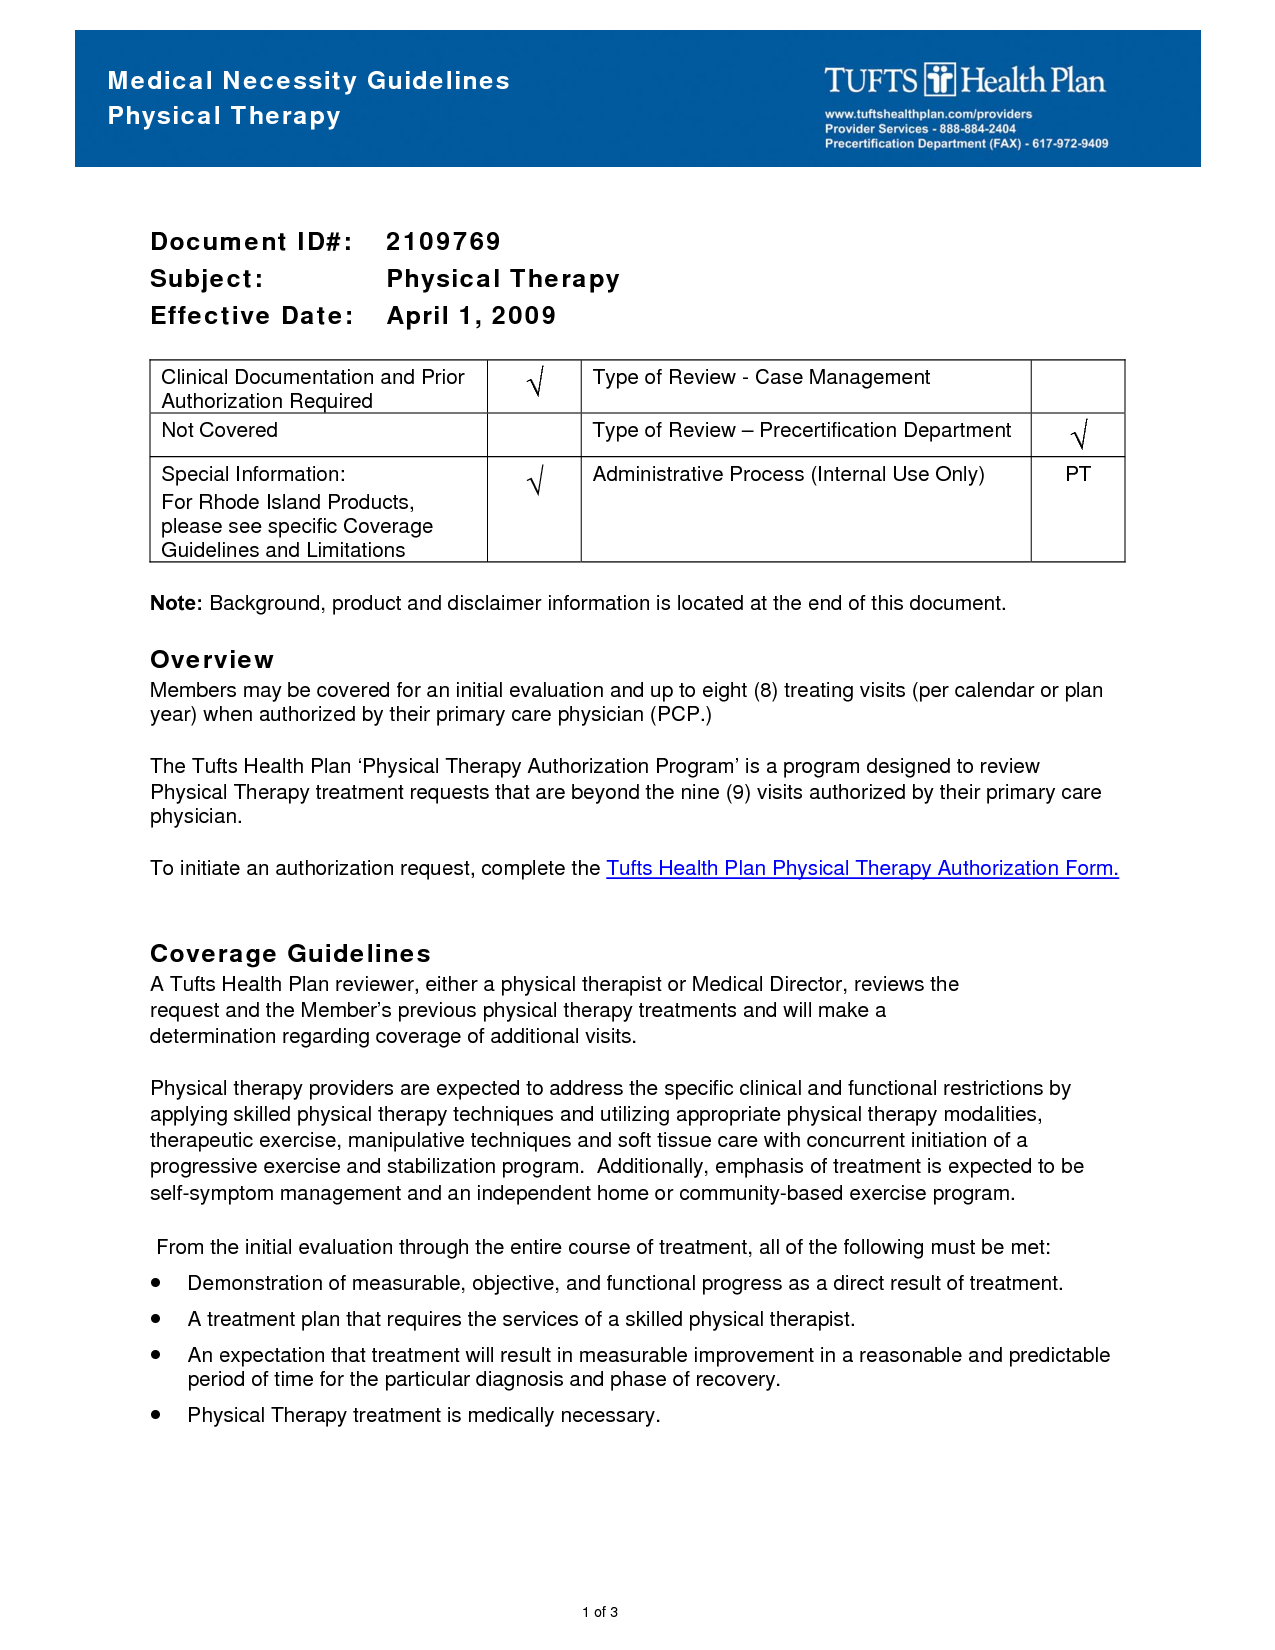 Letter Of Medical Necessity for Physical therapy Template - Best S Of Generic Certificate Medical Necessity